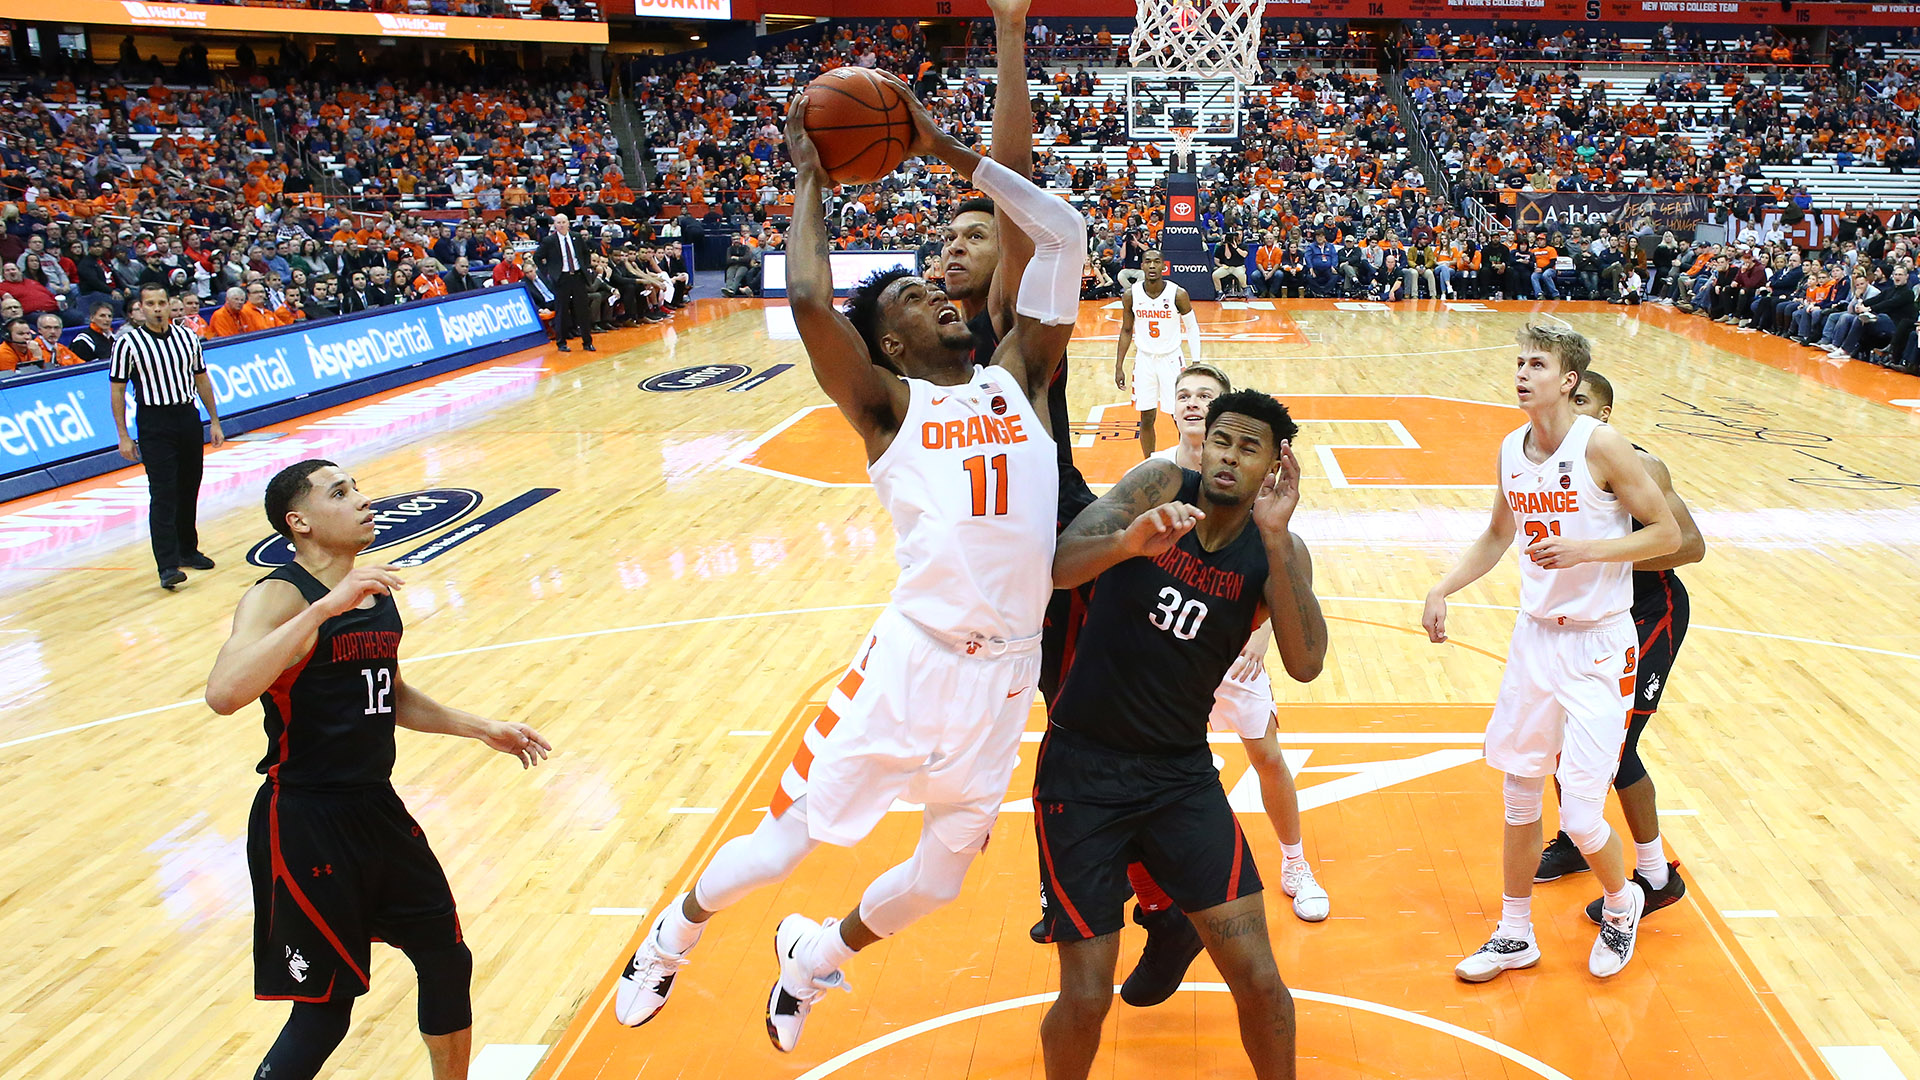 Orange Win Fourth Straight Syracuse University Athletics